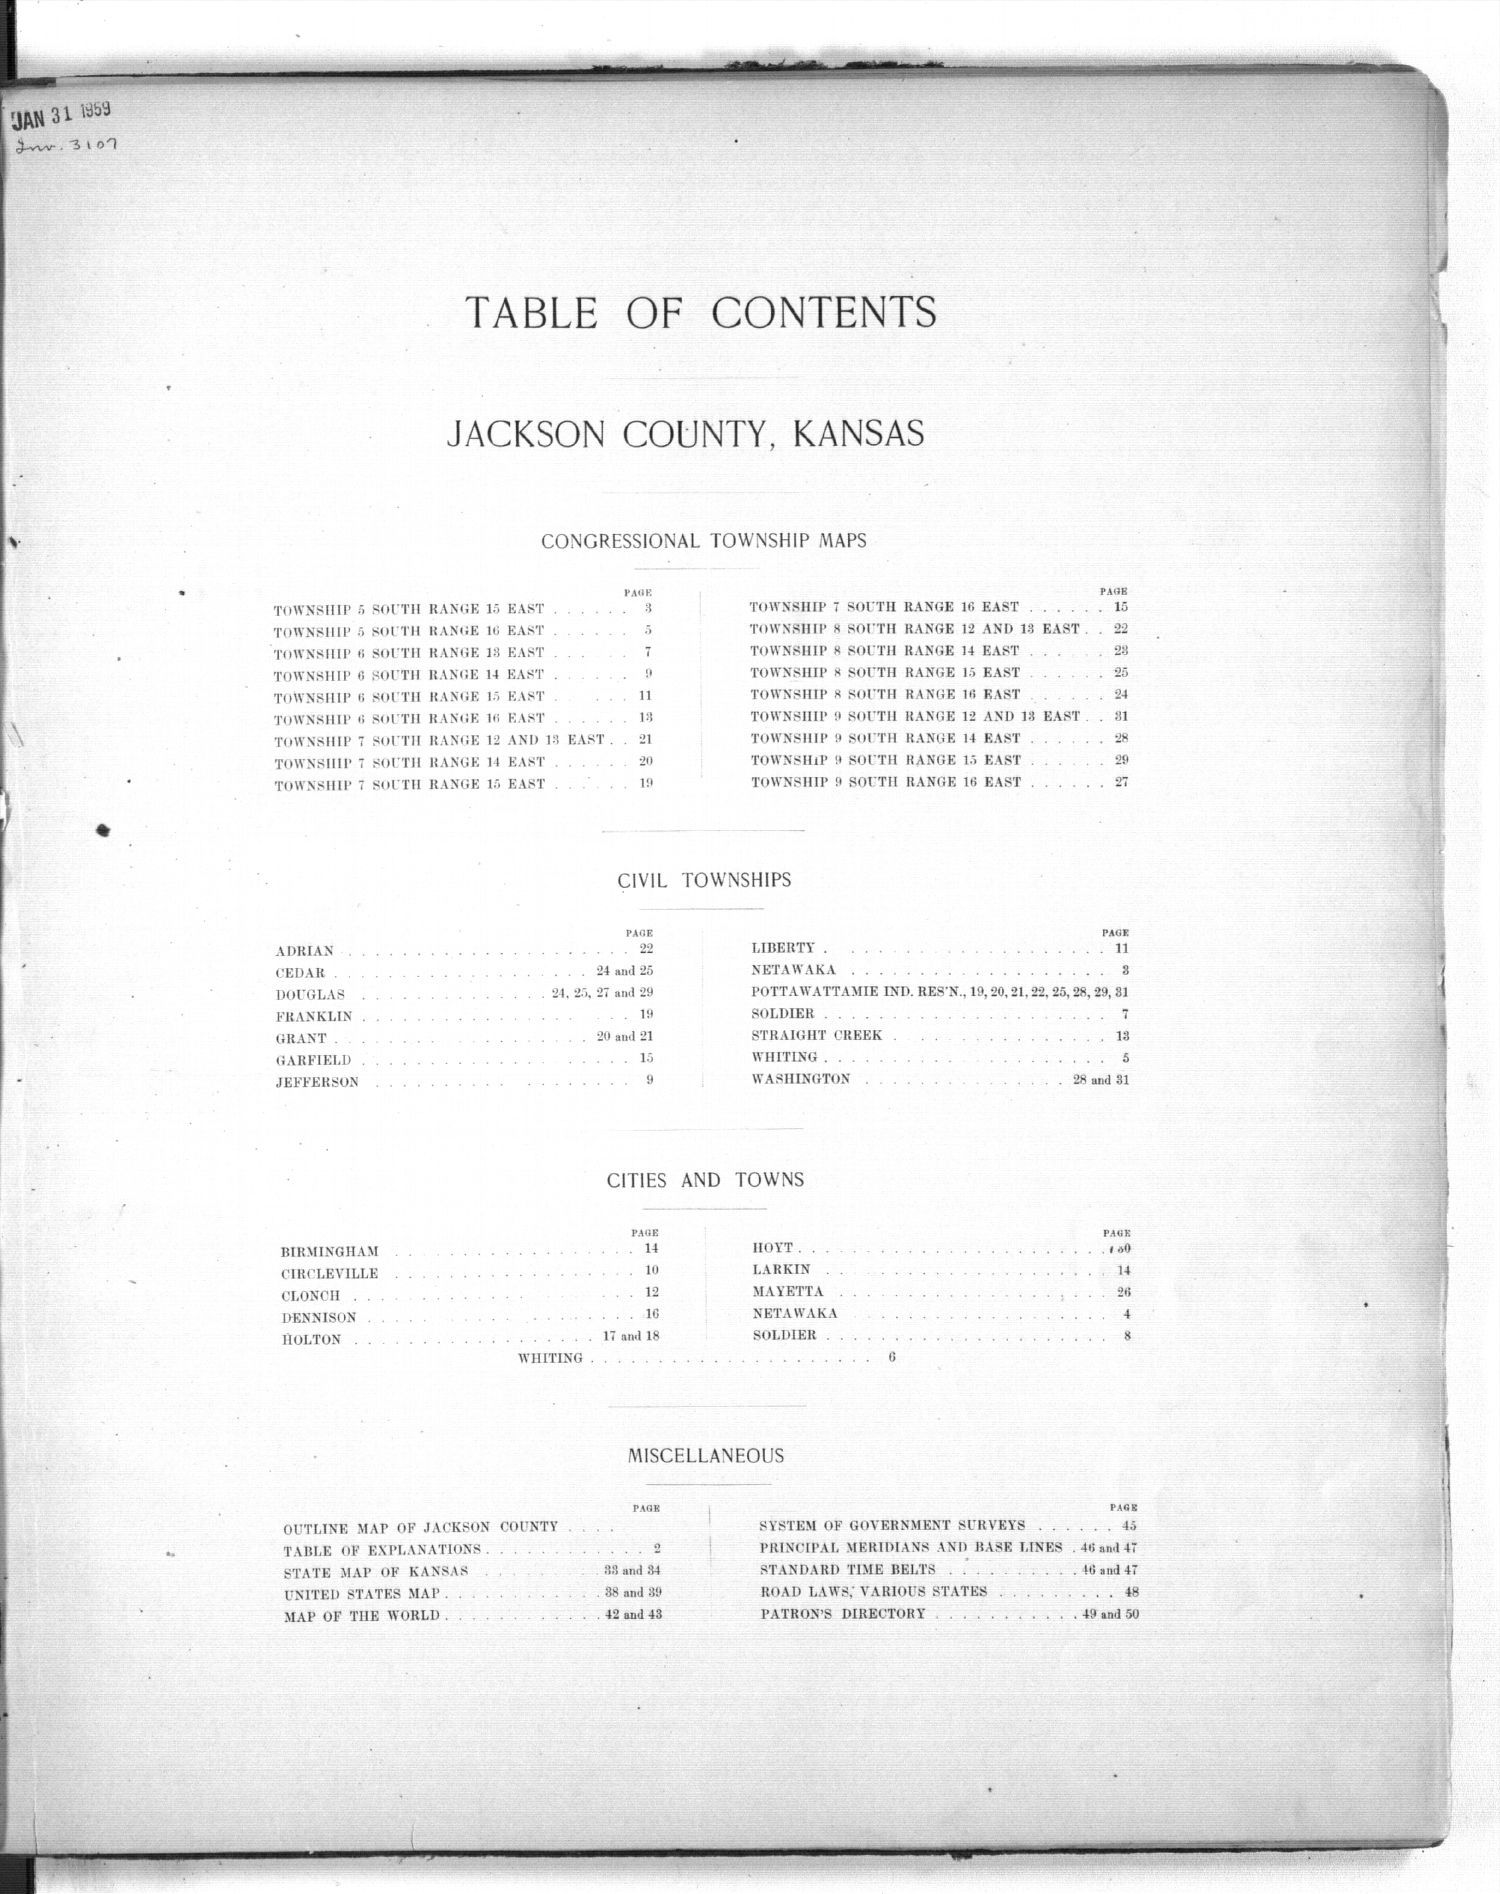 Plat book of Jackson County, Kansas - Table of Contents